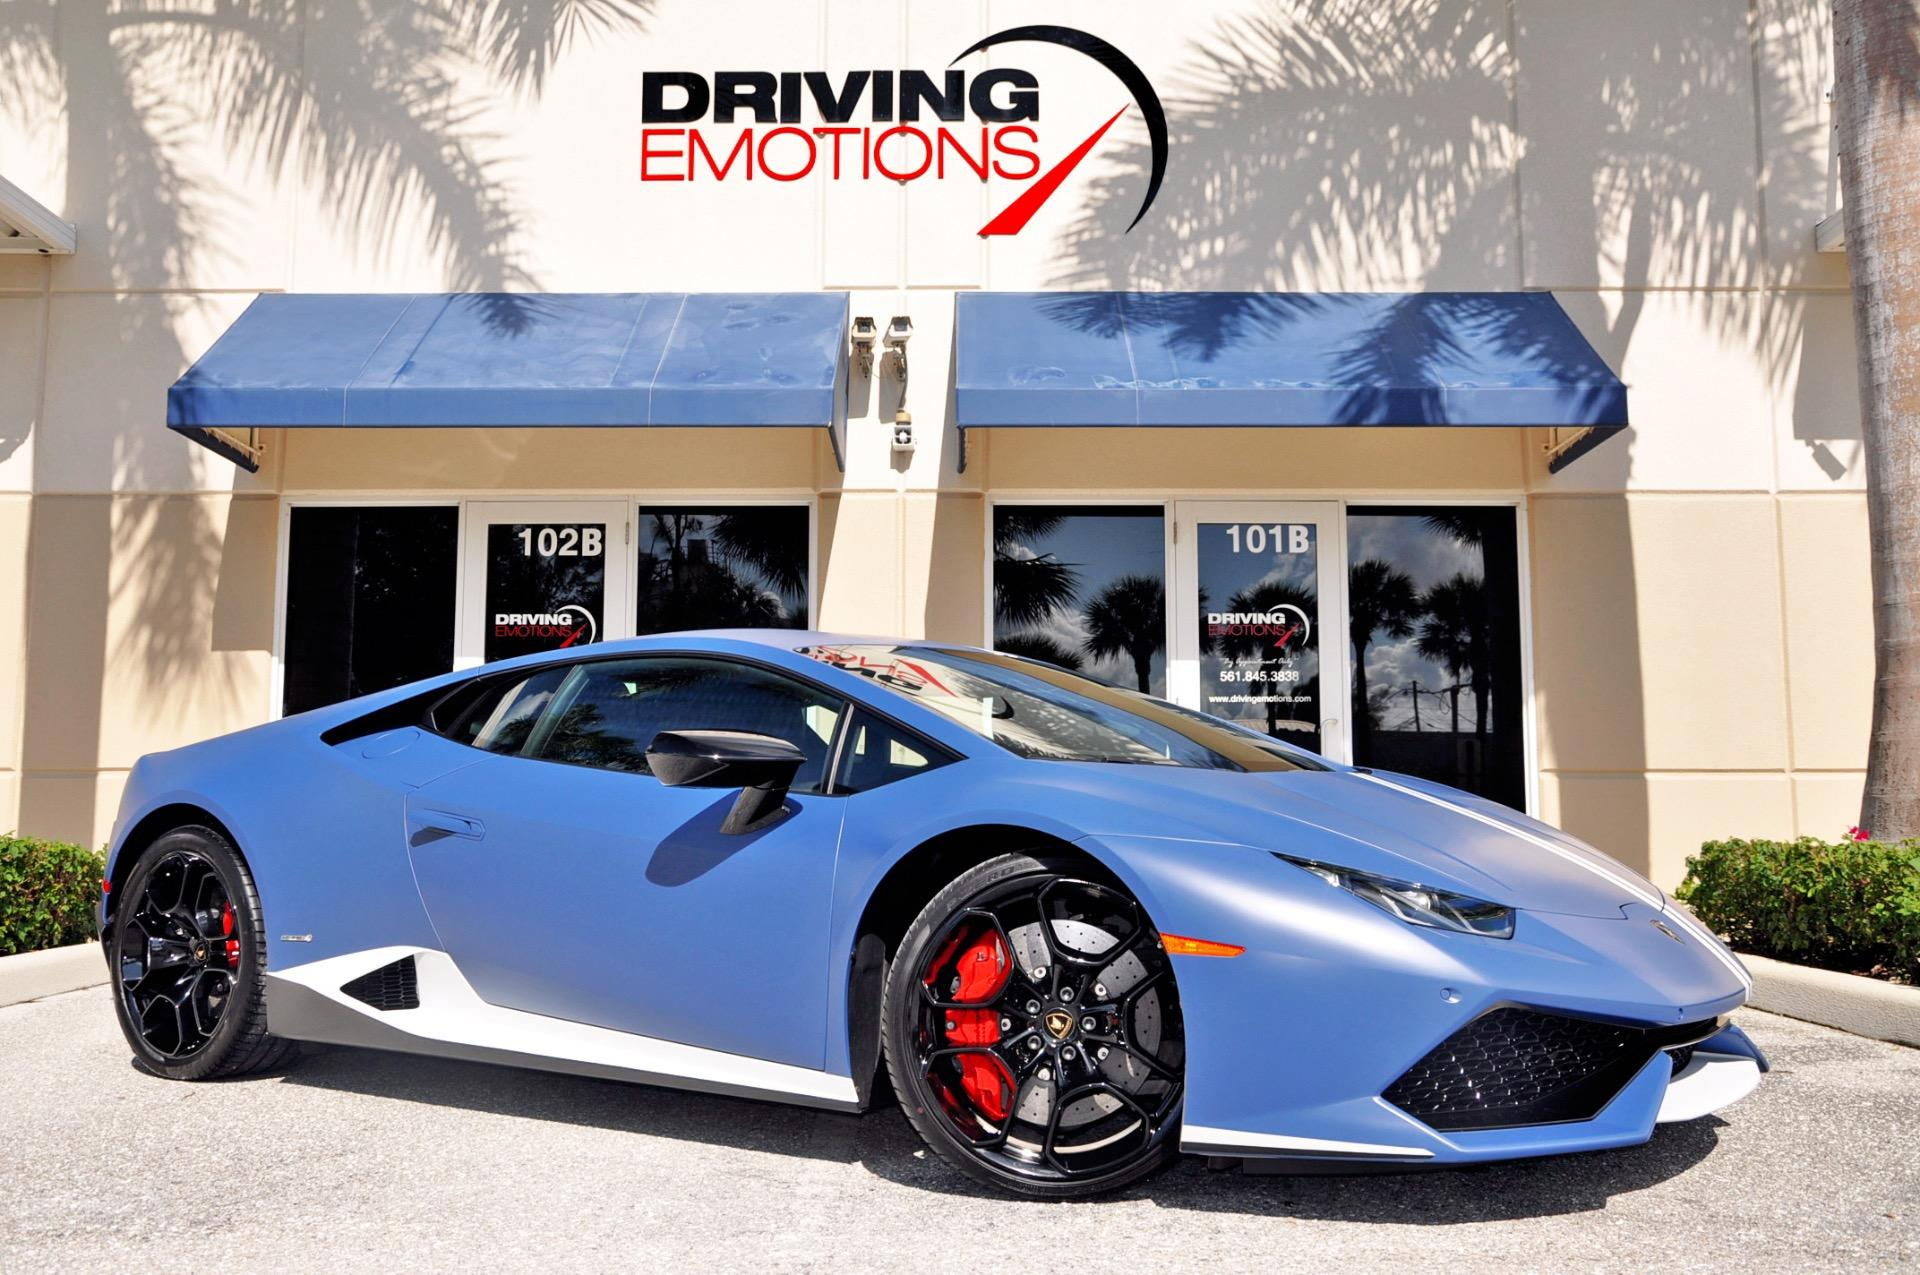 2017 Lamborghini Huracan Lp610 4 Se Avio Lp 610 4 Stock 6045 For